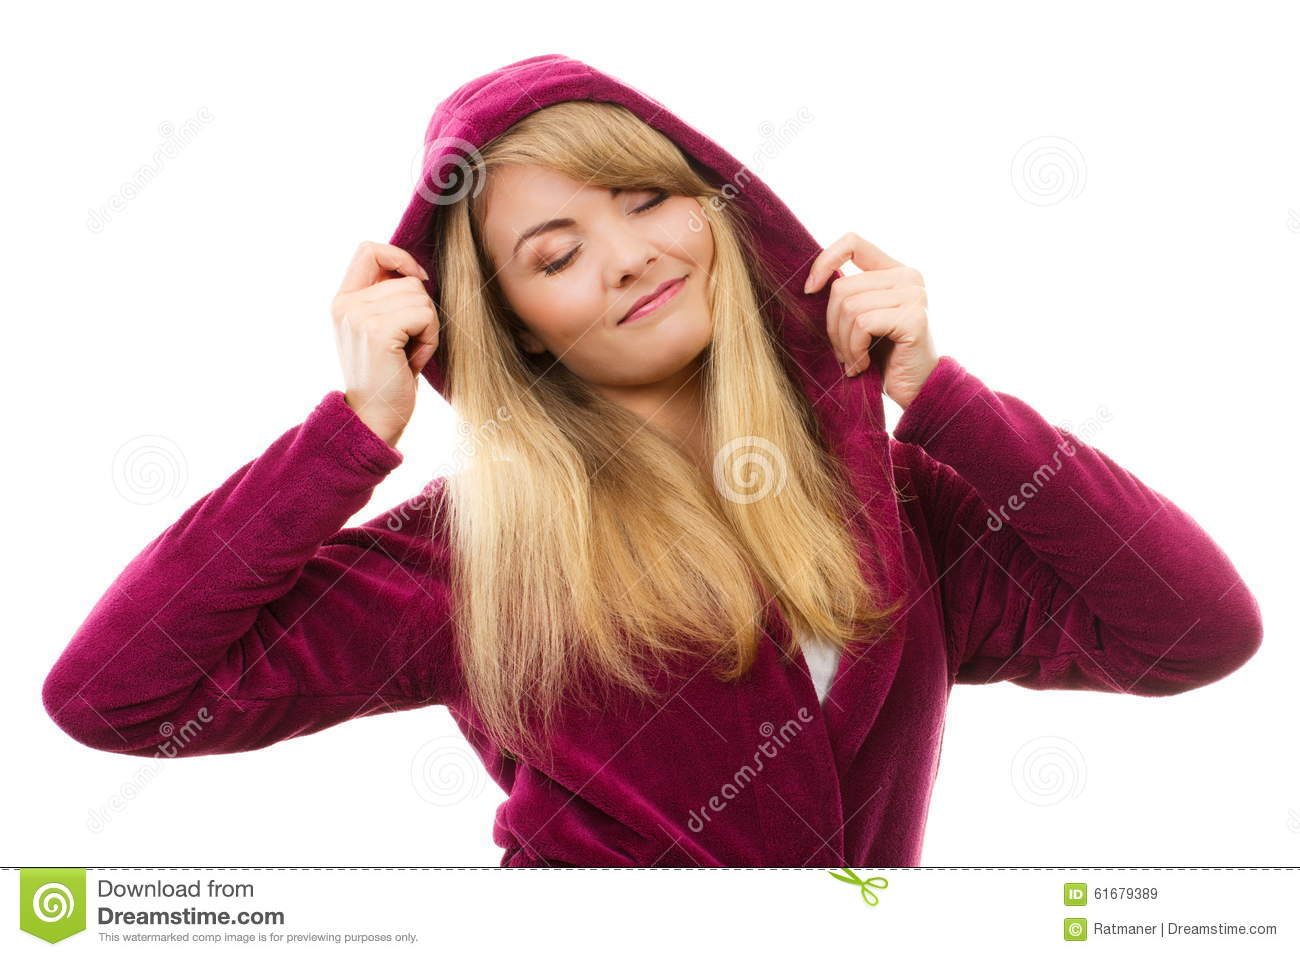 Happy smiling woman in purple bathrobe with hood, enjoying freshness and wellbeing